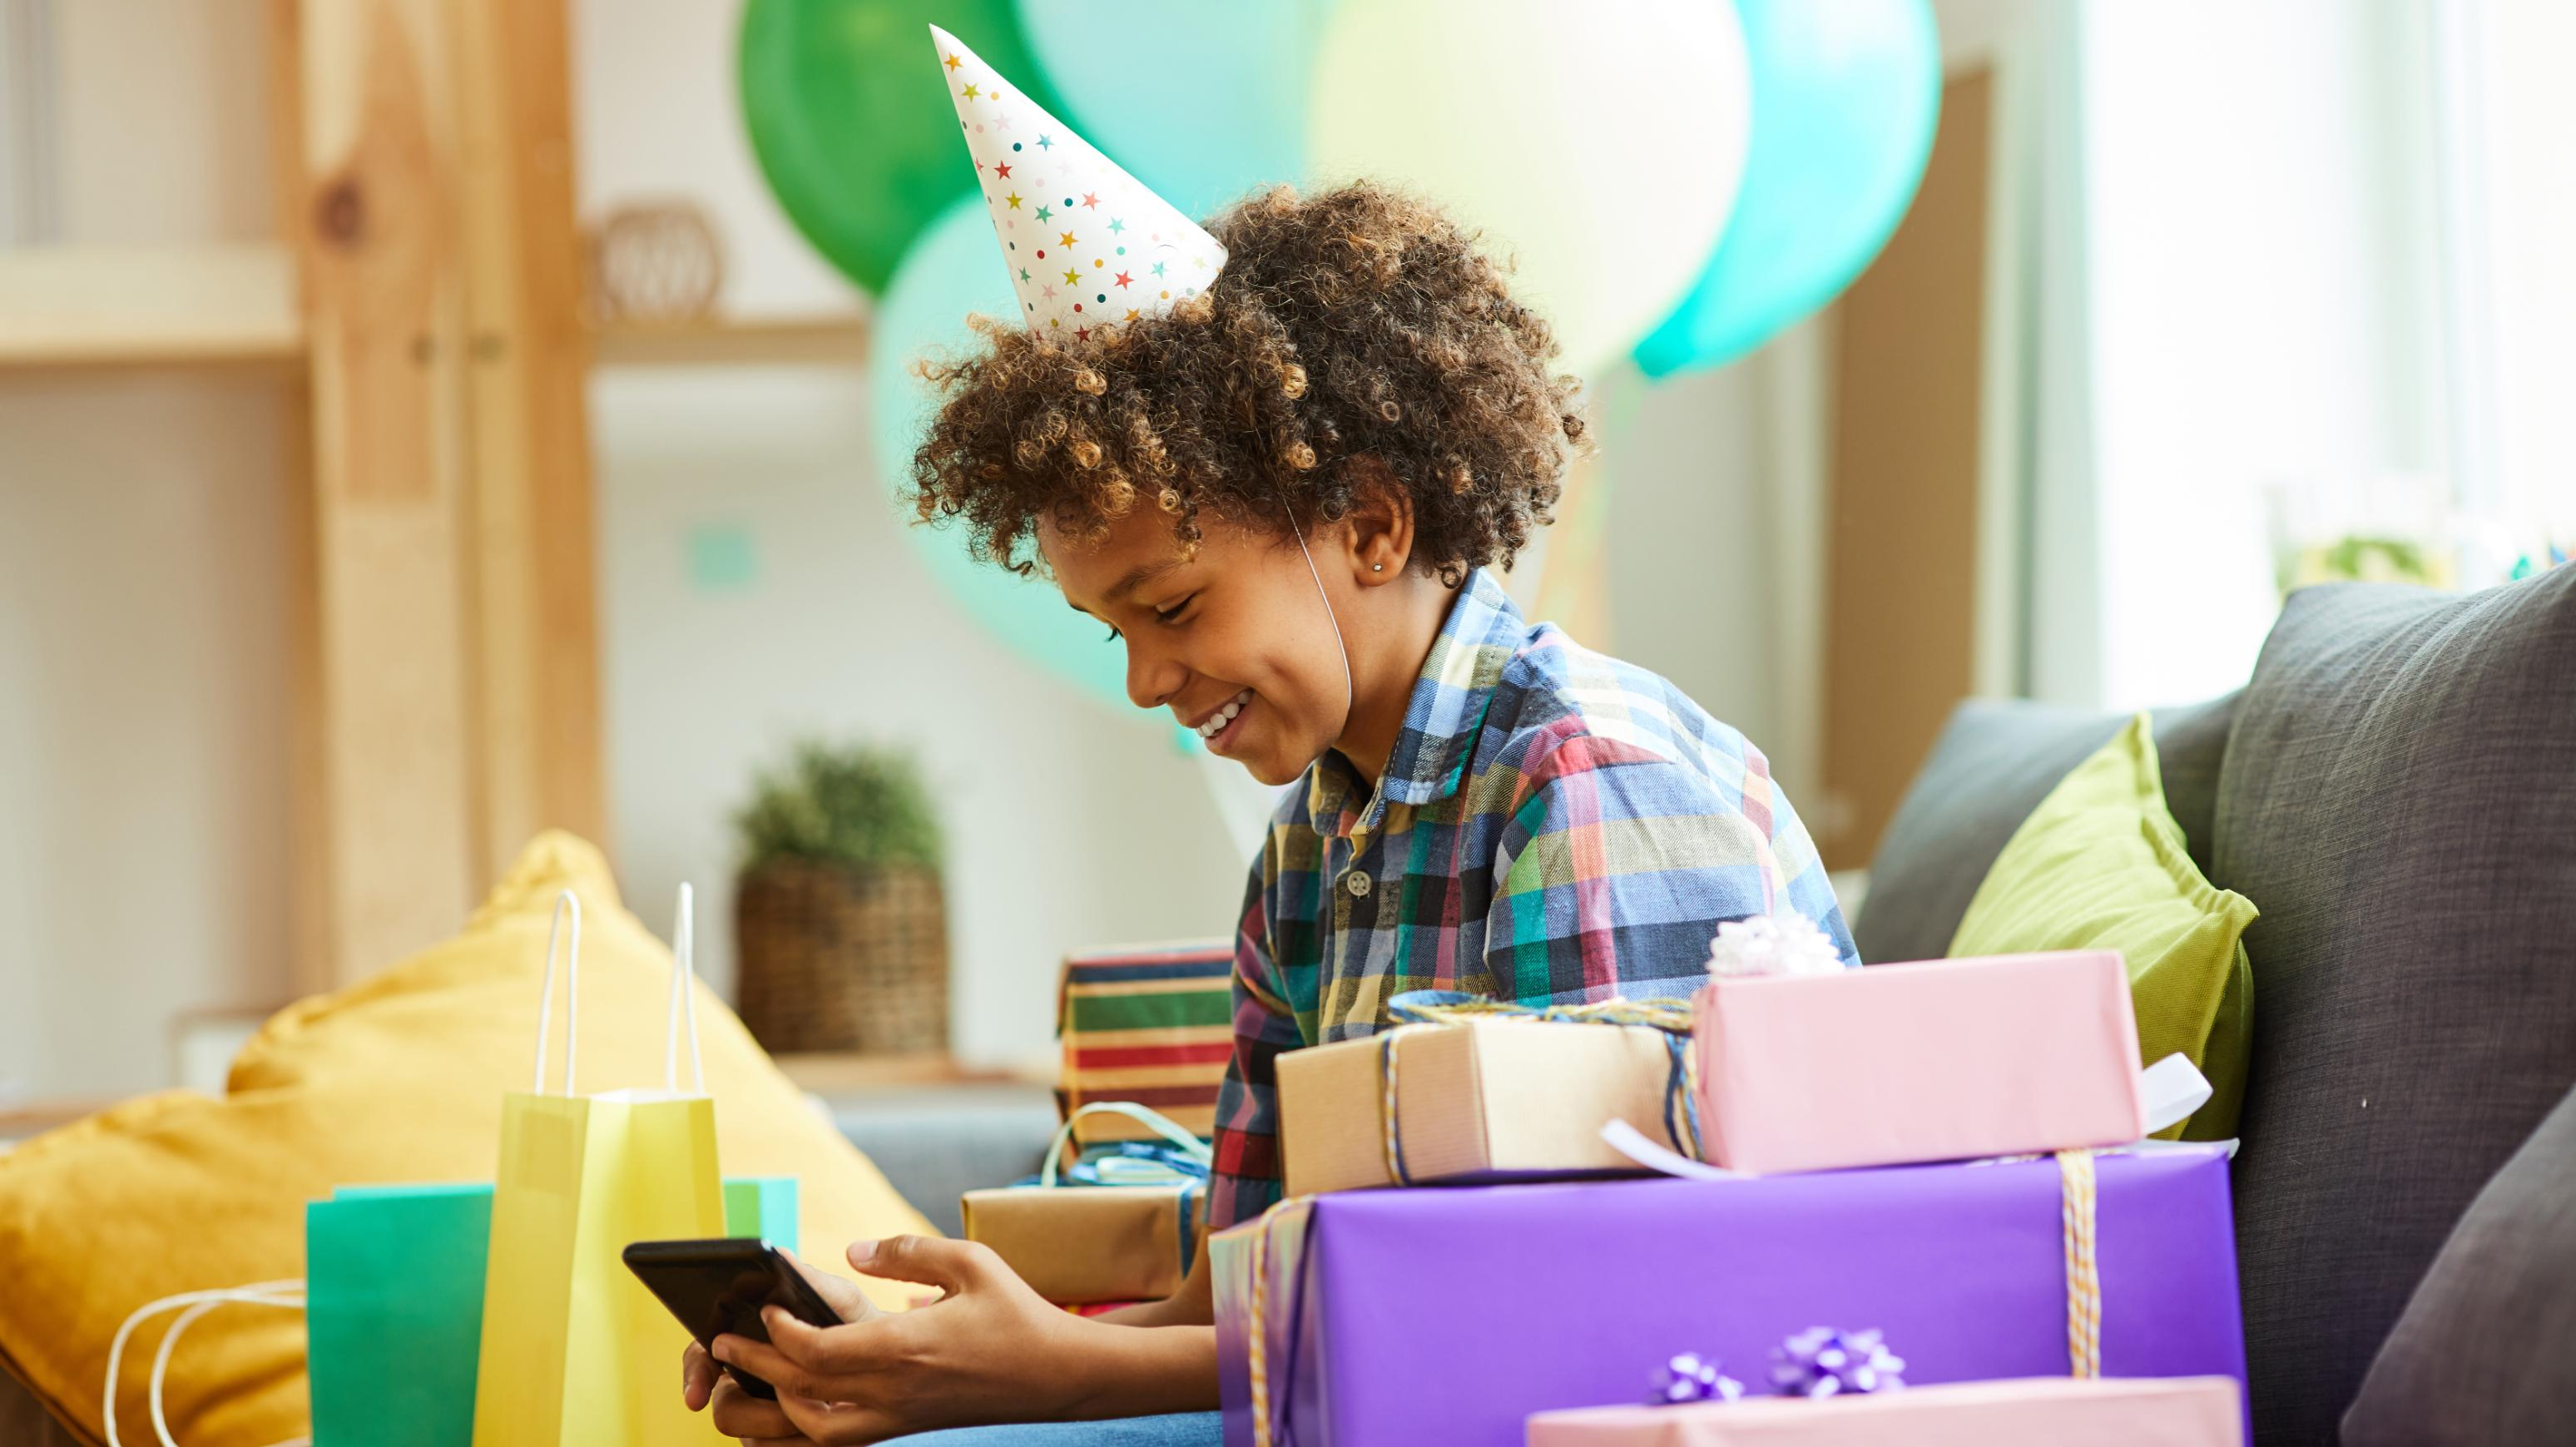 Virtual Birthday Party Ideas Games Gifts And More Cnn Underscored